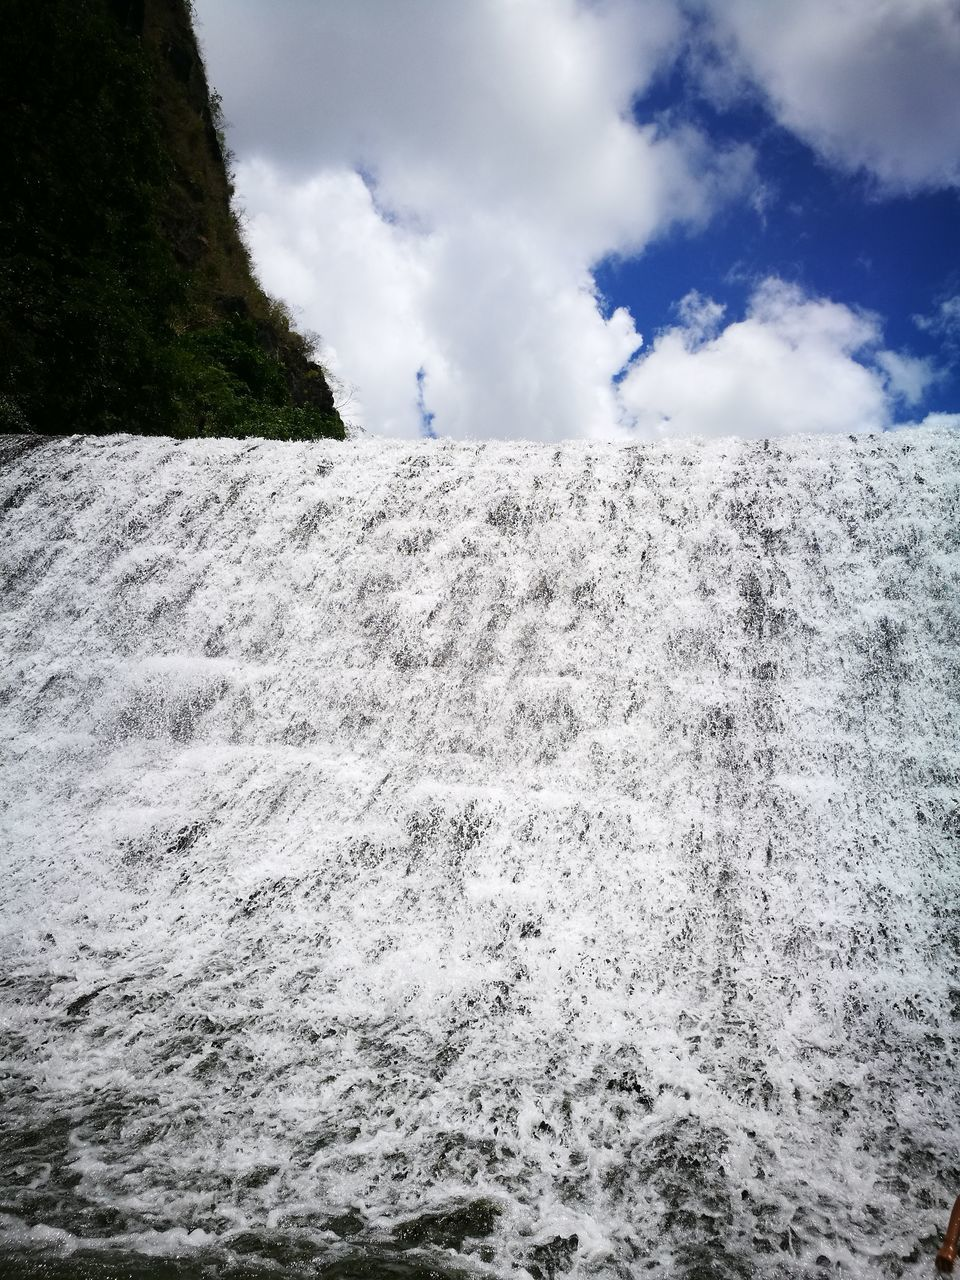 sky, cloud - sky, nature, beauty in nature, outdoors, scenics, motion, day, water, no people, tranquil scene, tranquility, steam, landscape, power in nature, waterfall, hot spring, spraying, tree